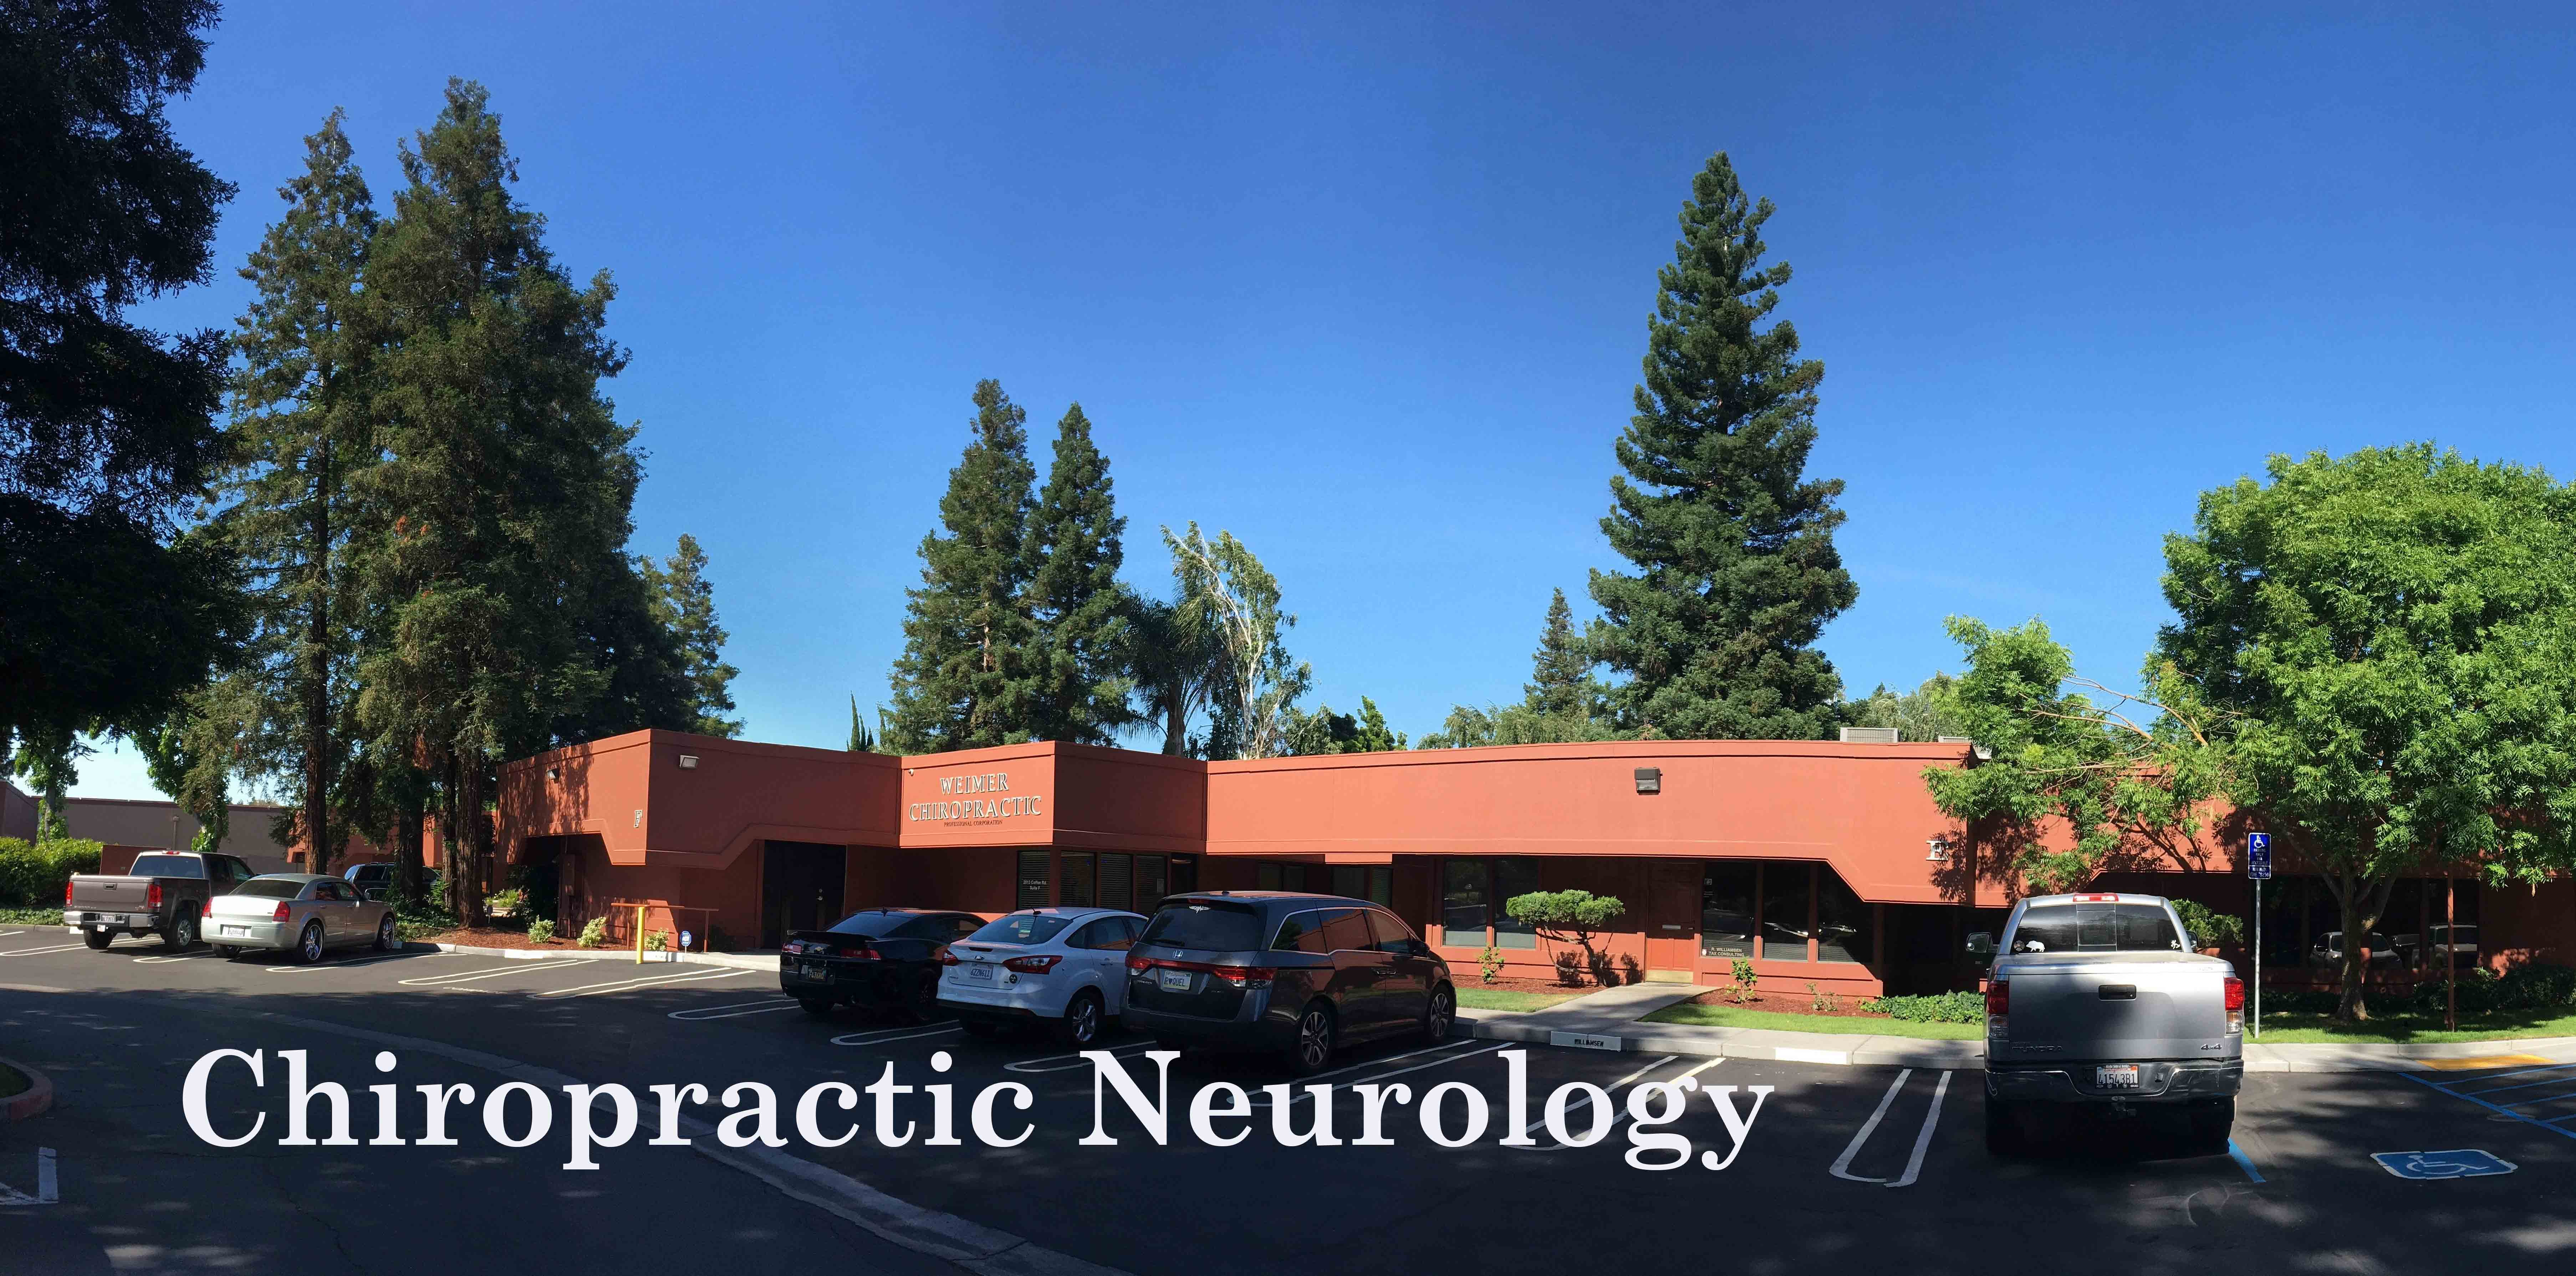 Chiropractic Neurology and Pain Relief at Weimer Chiropractic